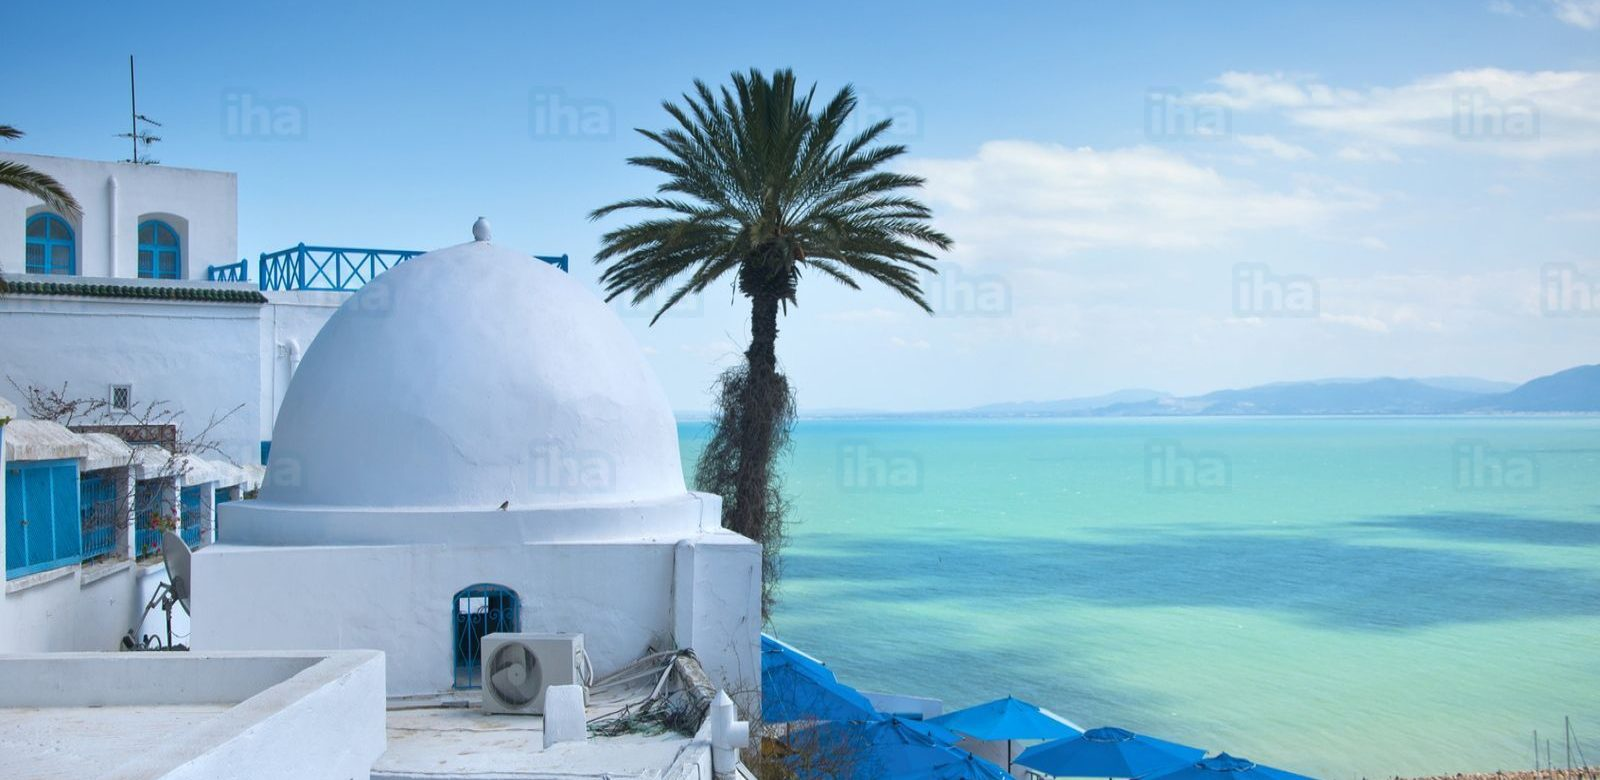 Tunisia: Tourism industry is showing signs of recovery from the 2015 crash 2